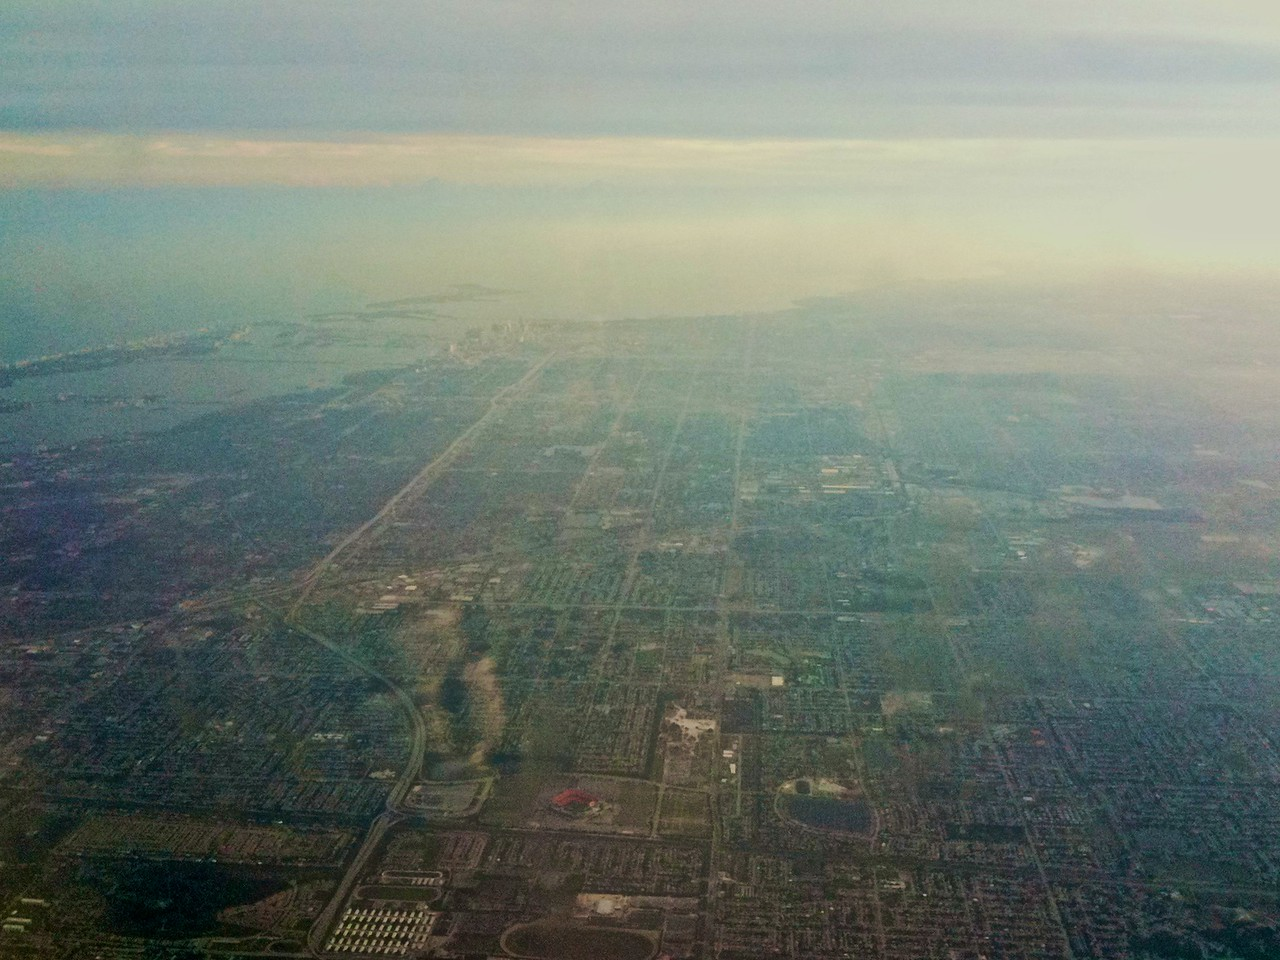 View over the Miami area taken with my iPhone as I flew to New Orleans. You can just make out the tall buildings of downtown Miami in the middle distance of the photo, as well as barrier islands which make up the city of Miami Beach on the left-hand side, separating the mainland and Biscayne Bay from the Atlantic Ocean.